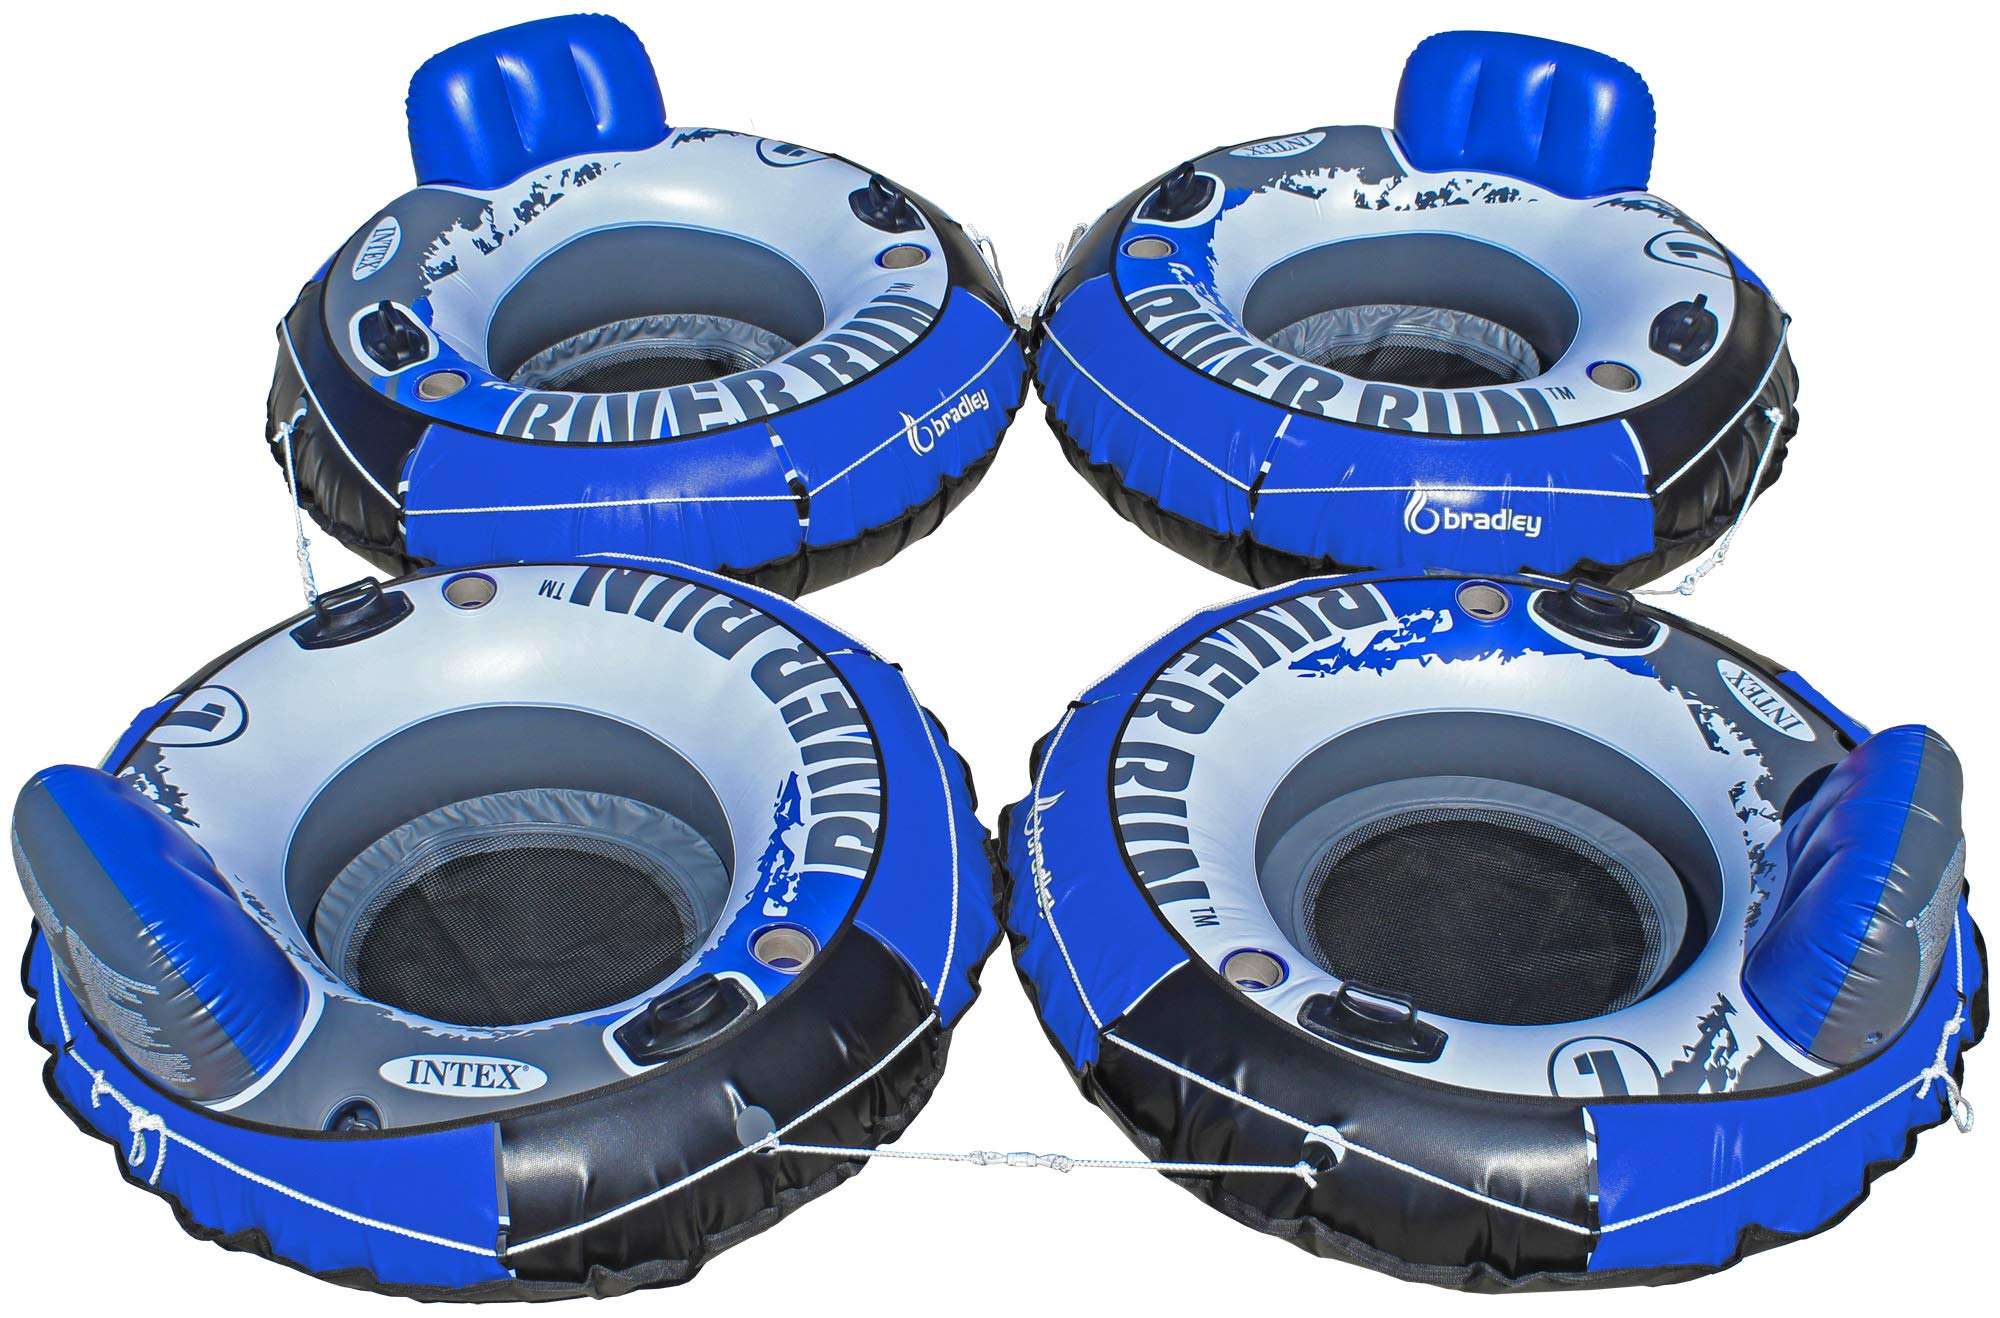 Intex Heavy Duty River Run Tube with Cover (4 Pack)   Floating Lounger   River Tube